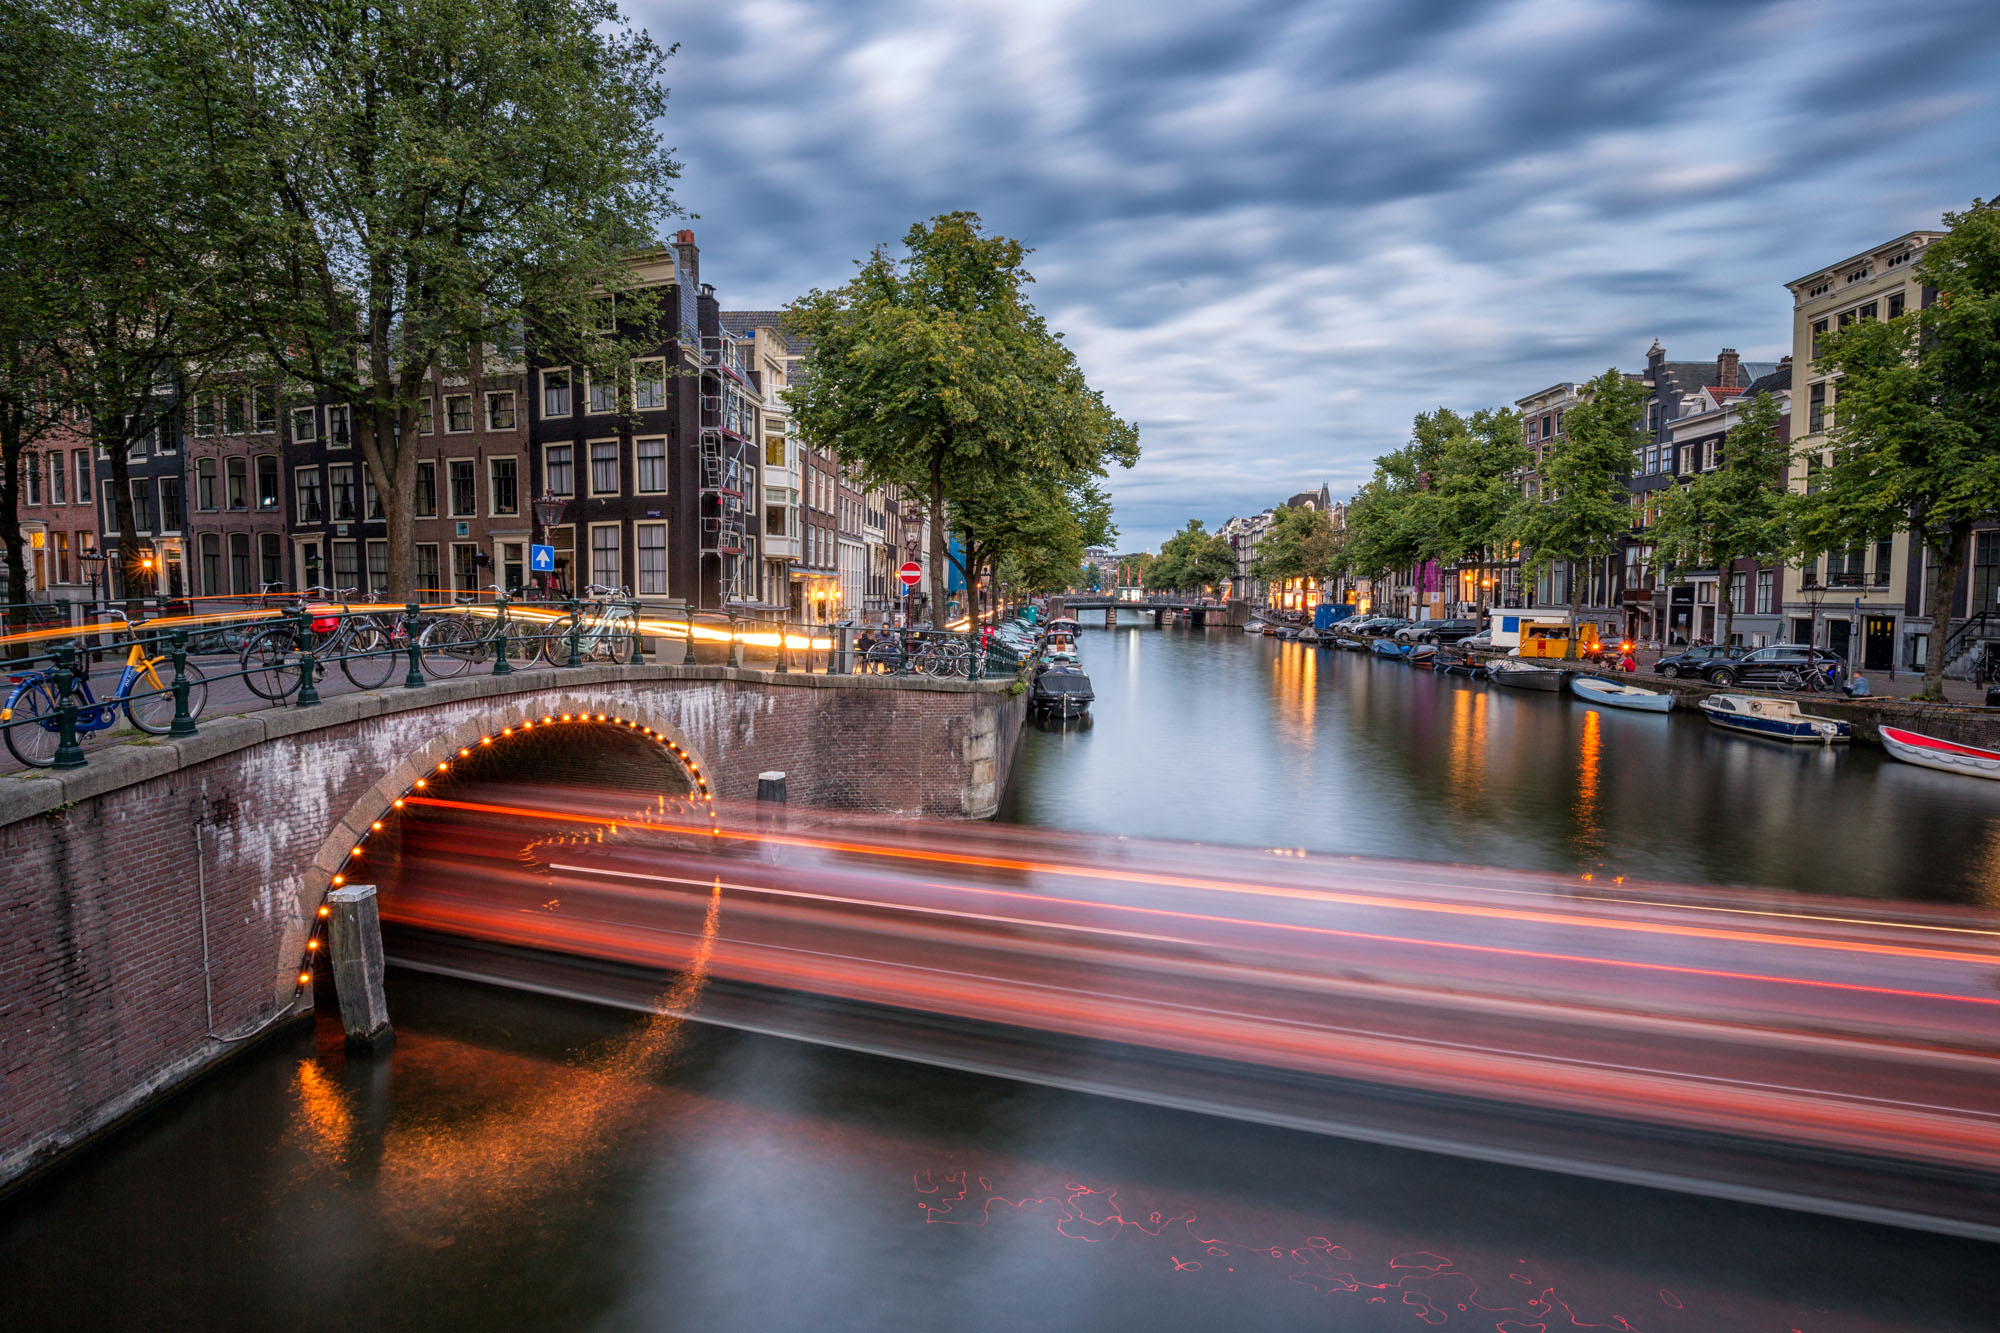 long exposure photography of the light trials of a canal boat in Amsterdam at night in The Netherlands